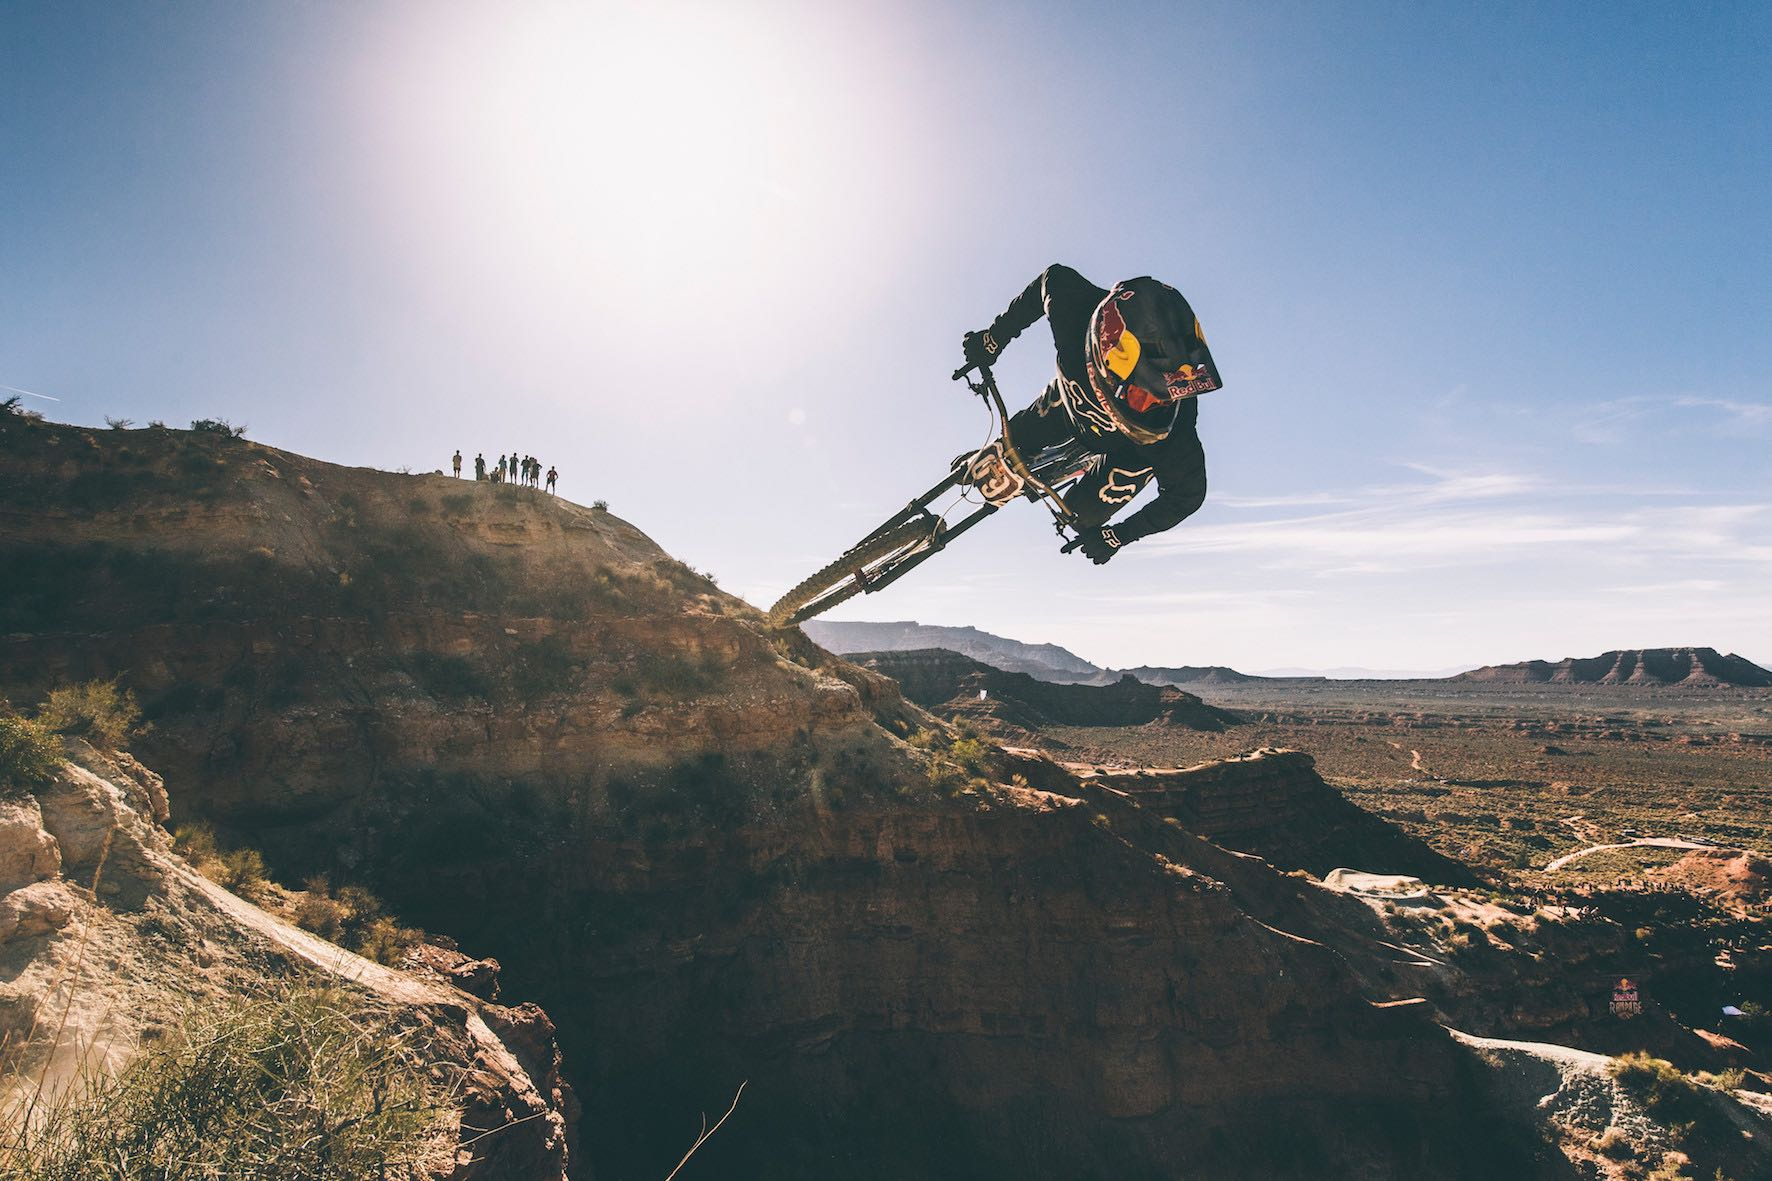 Andreu Lacondeguy finishing in 2nd at the Red Bull Rampage Freeride MTB event